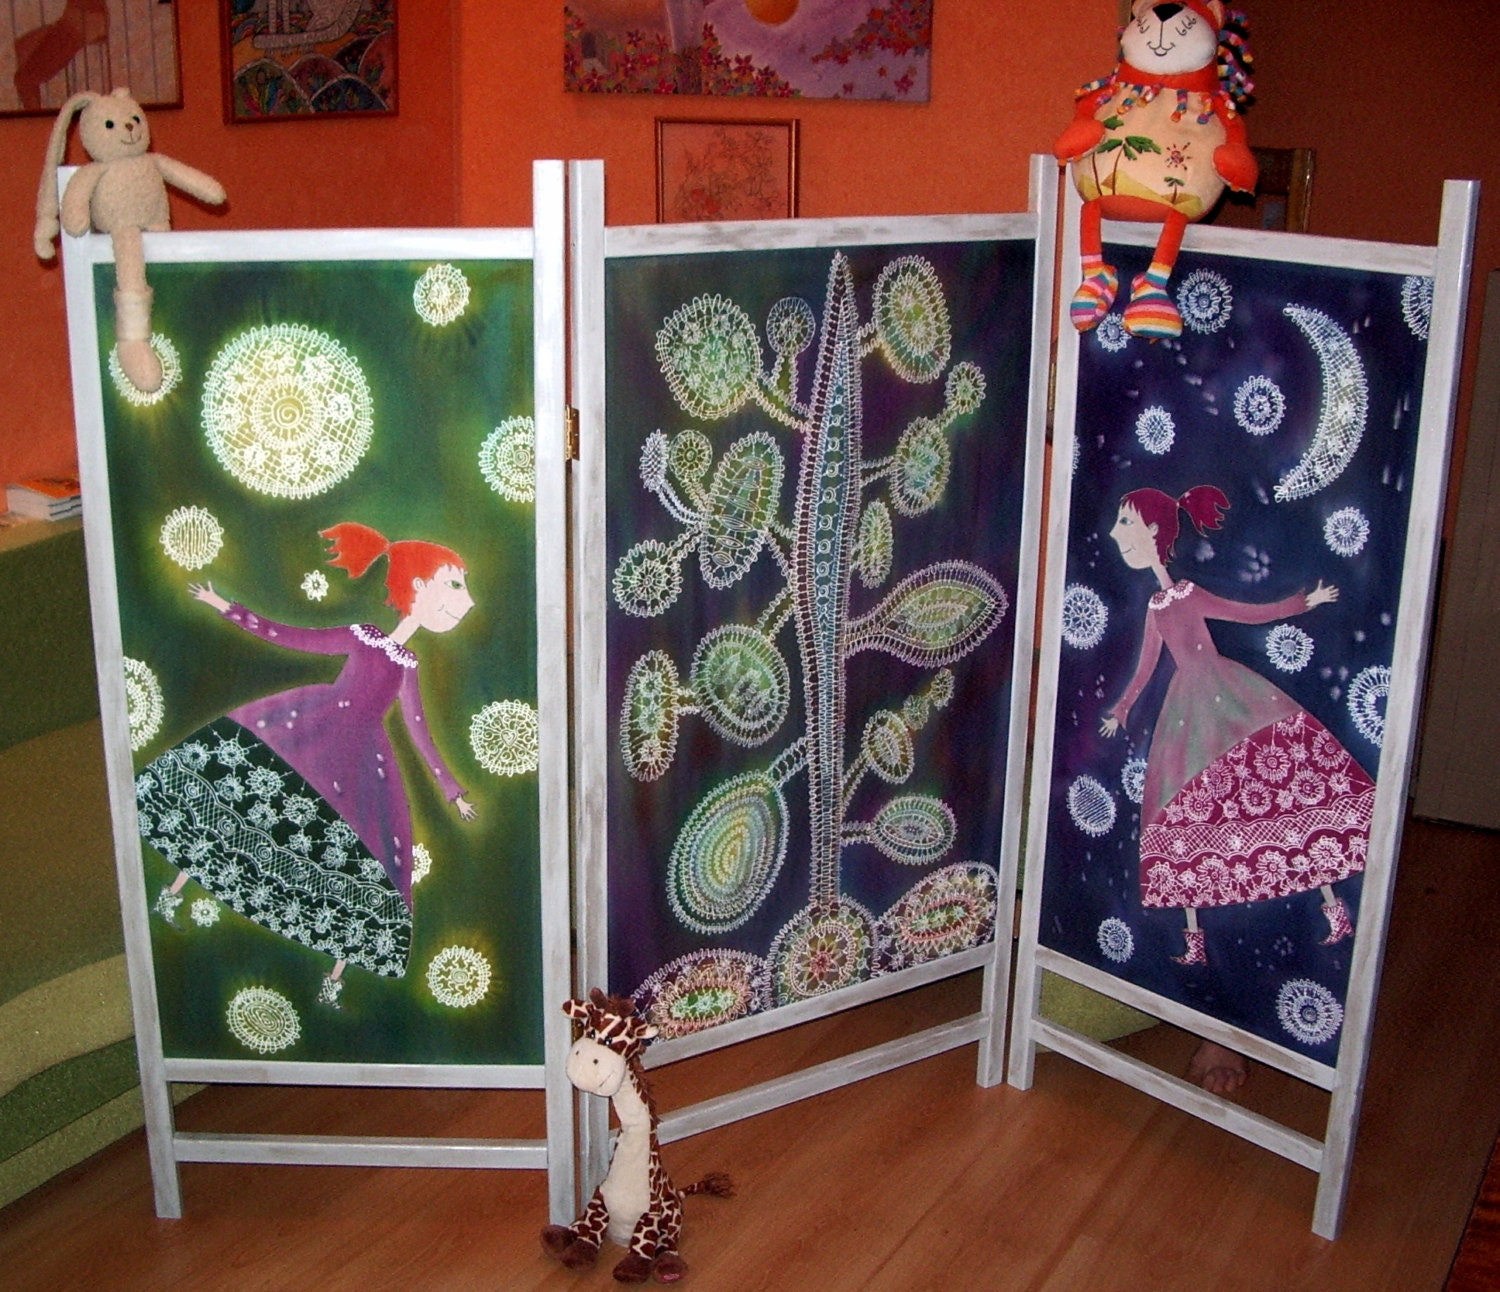 Room Dividers For Kids Bedrooms: Screen Room Folding Room Divider Cotton Screen Happy Girl